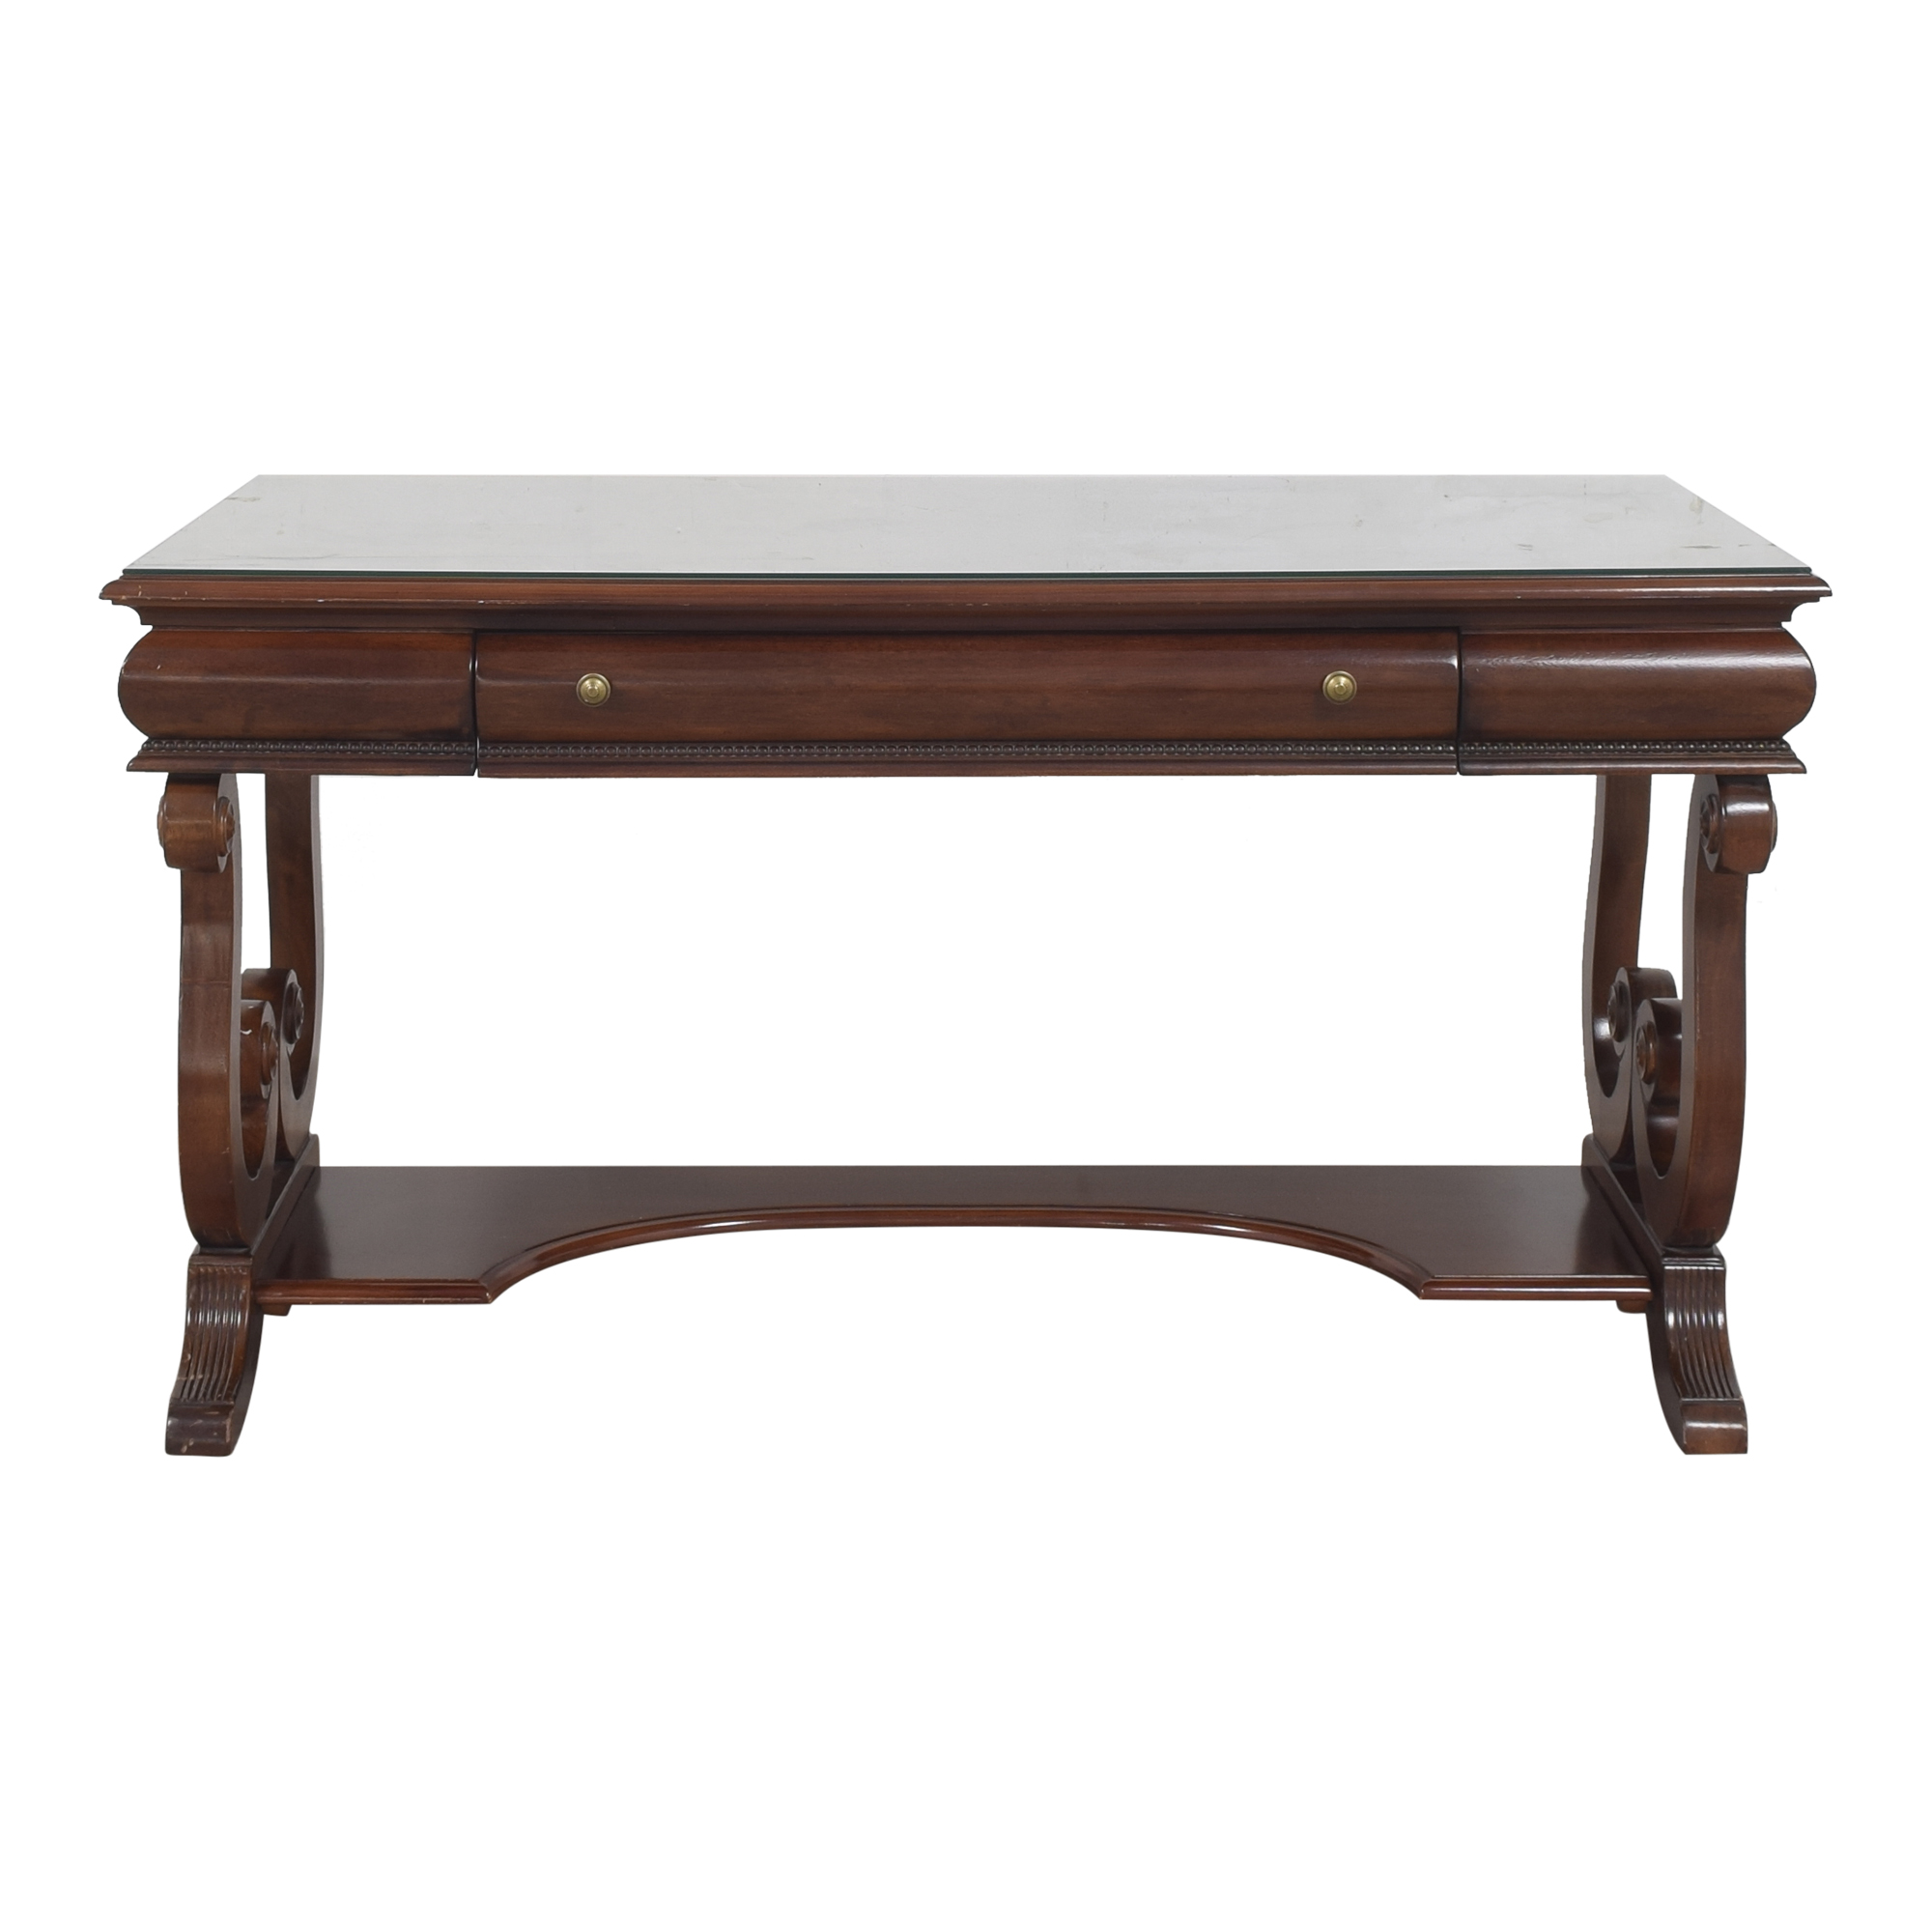 Universal Furniture Universal Furniture Trestle Desk brown